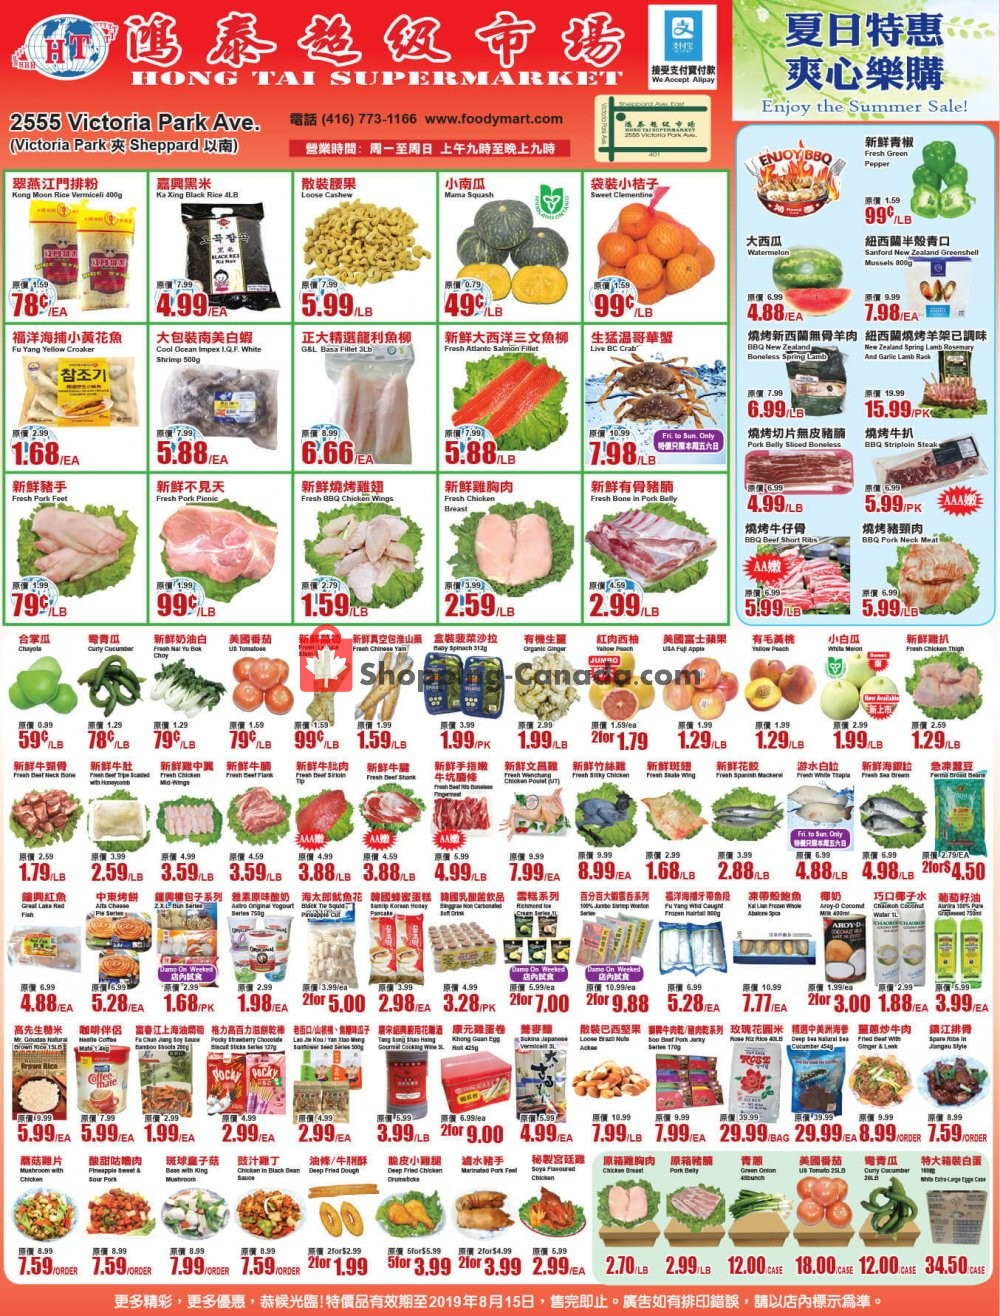 Flyer Foodymart Canada - from Friday August 9, 2019 to Thursday August 15, 2019